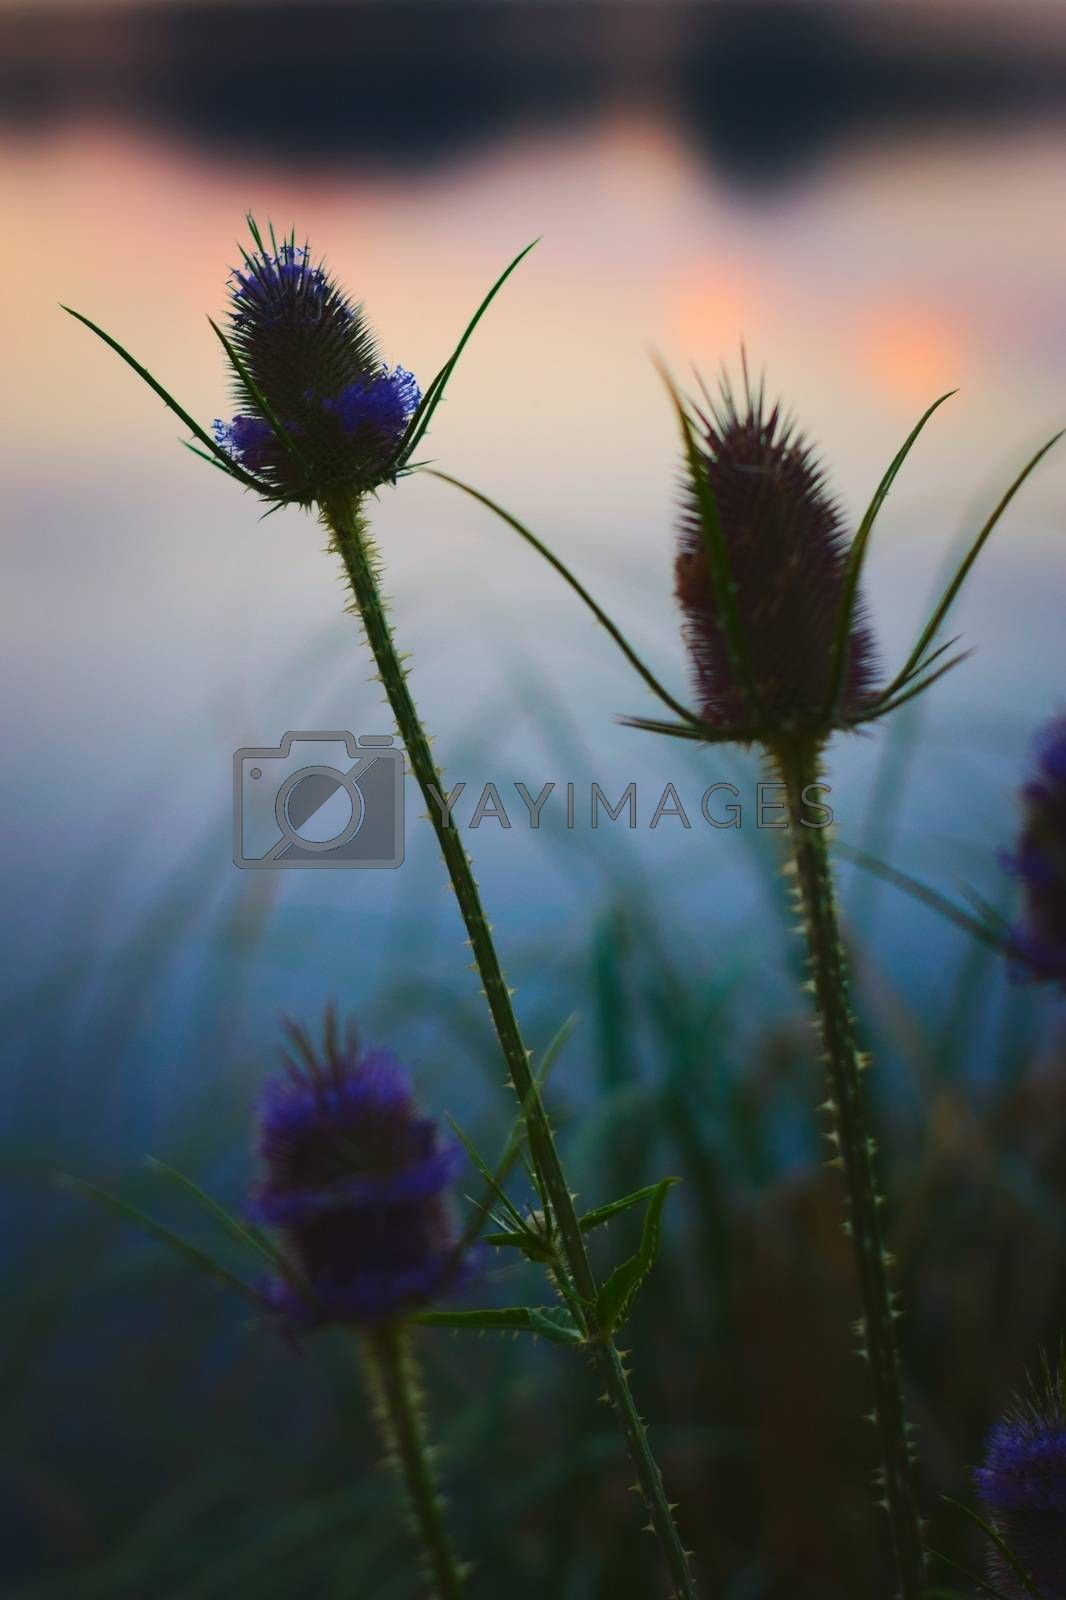 Royalty free image of Thistles and long grass silhouetted against the reflections of the twilight sky by hernan_hyper